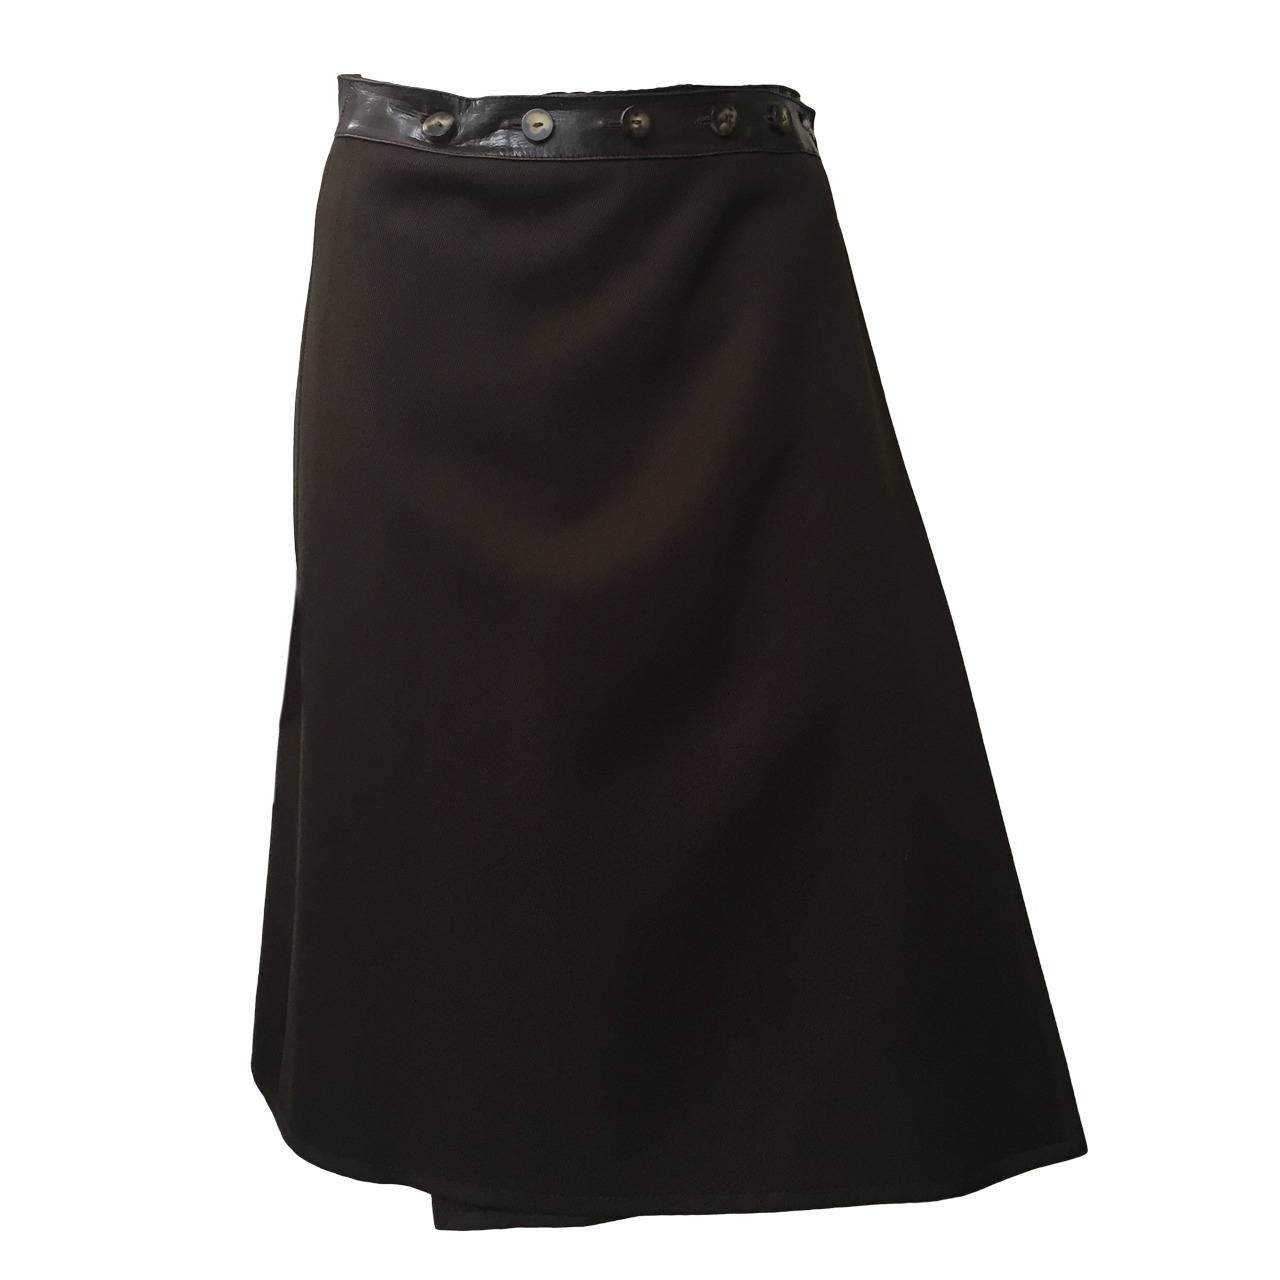 Celine Brown Wool with Leather Trim Wrap Skirt Size 6.